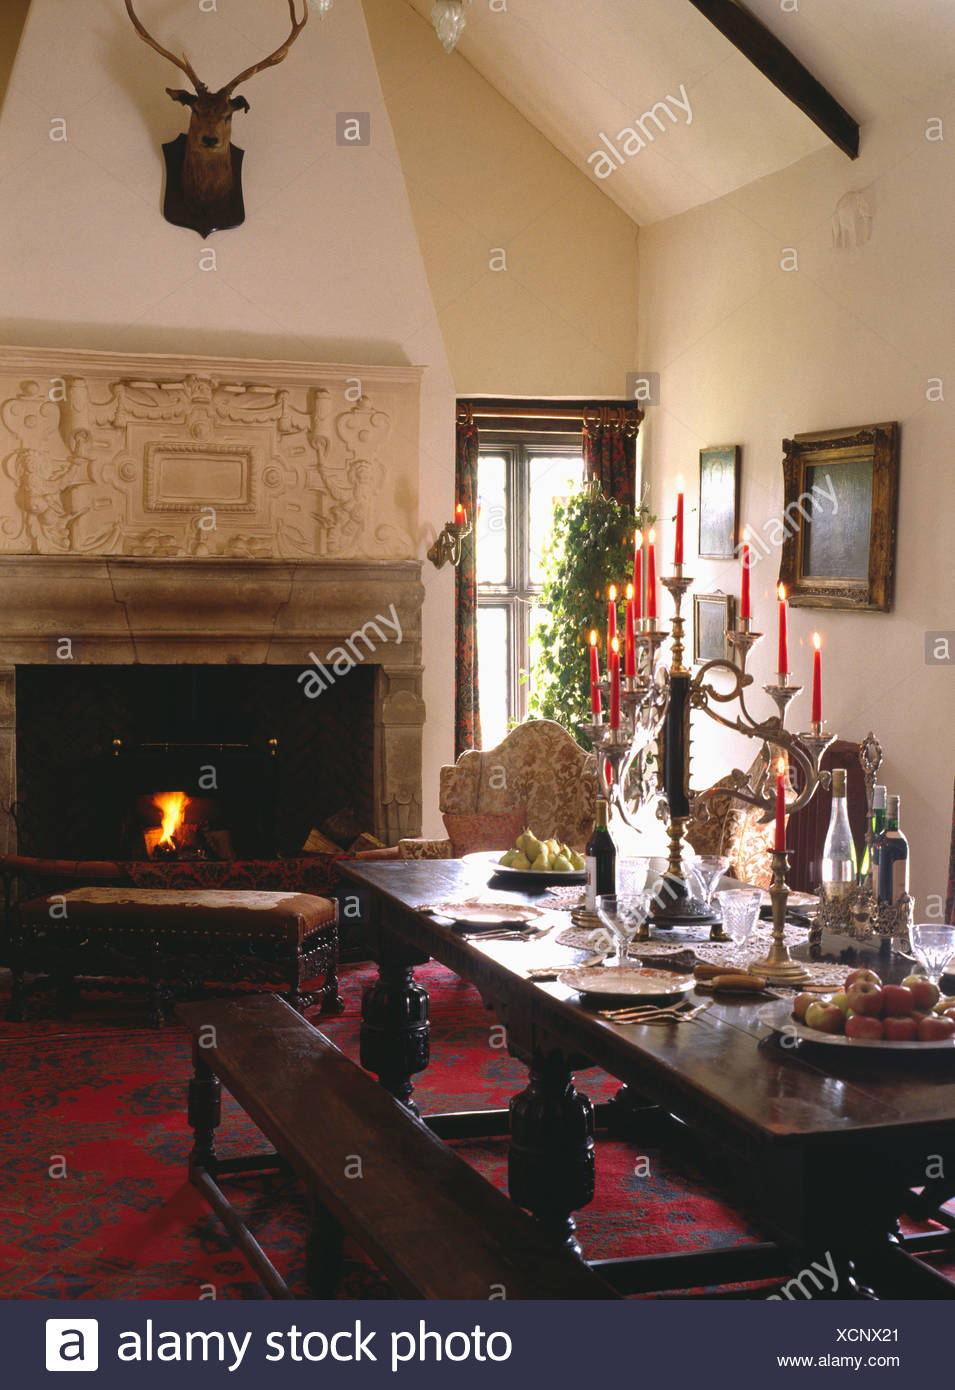 Marvelous Ornate Overmantel On Jacobean Fireplace With Fire Lit In Squirreltailoven Fun Painted Chair Ideas Images Squirreltailovenorg